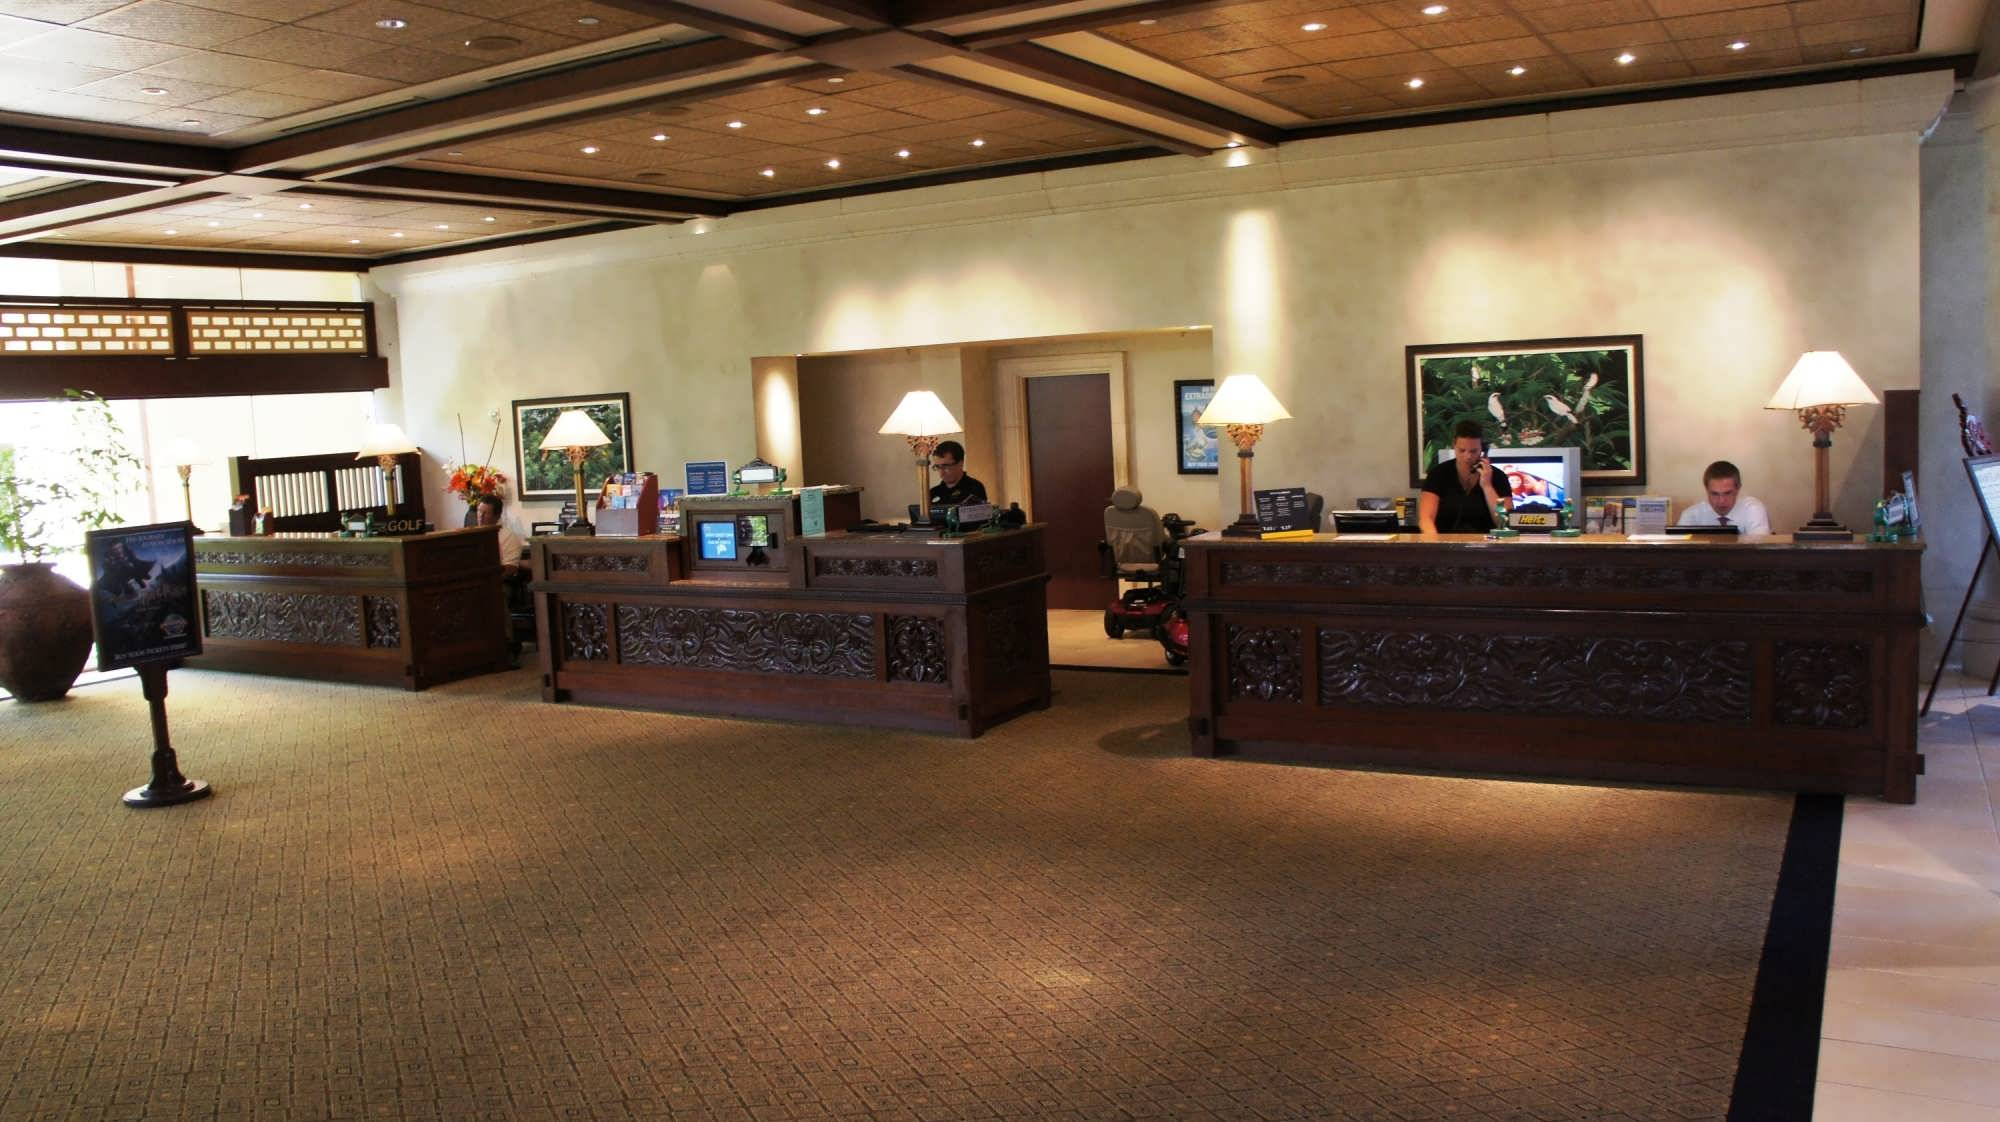 Concierge area at Universal's Royal Pacific Resort.